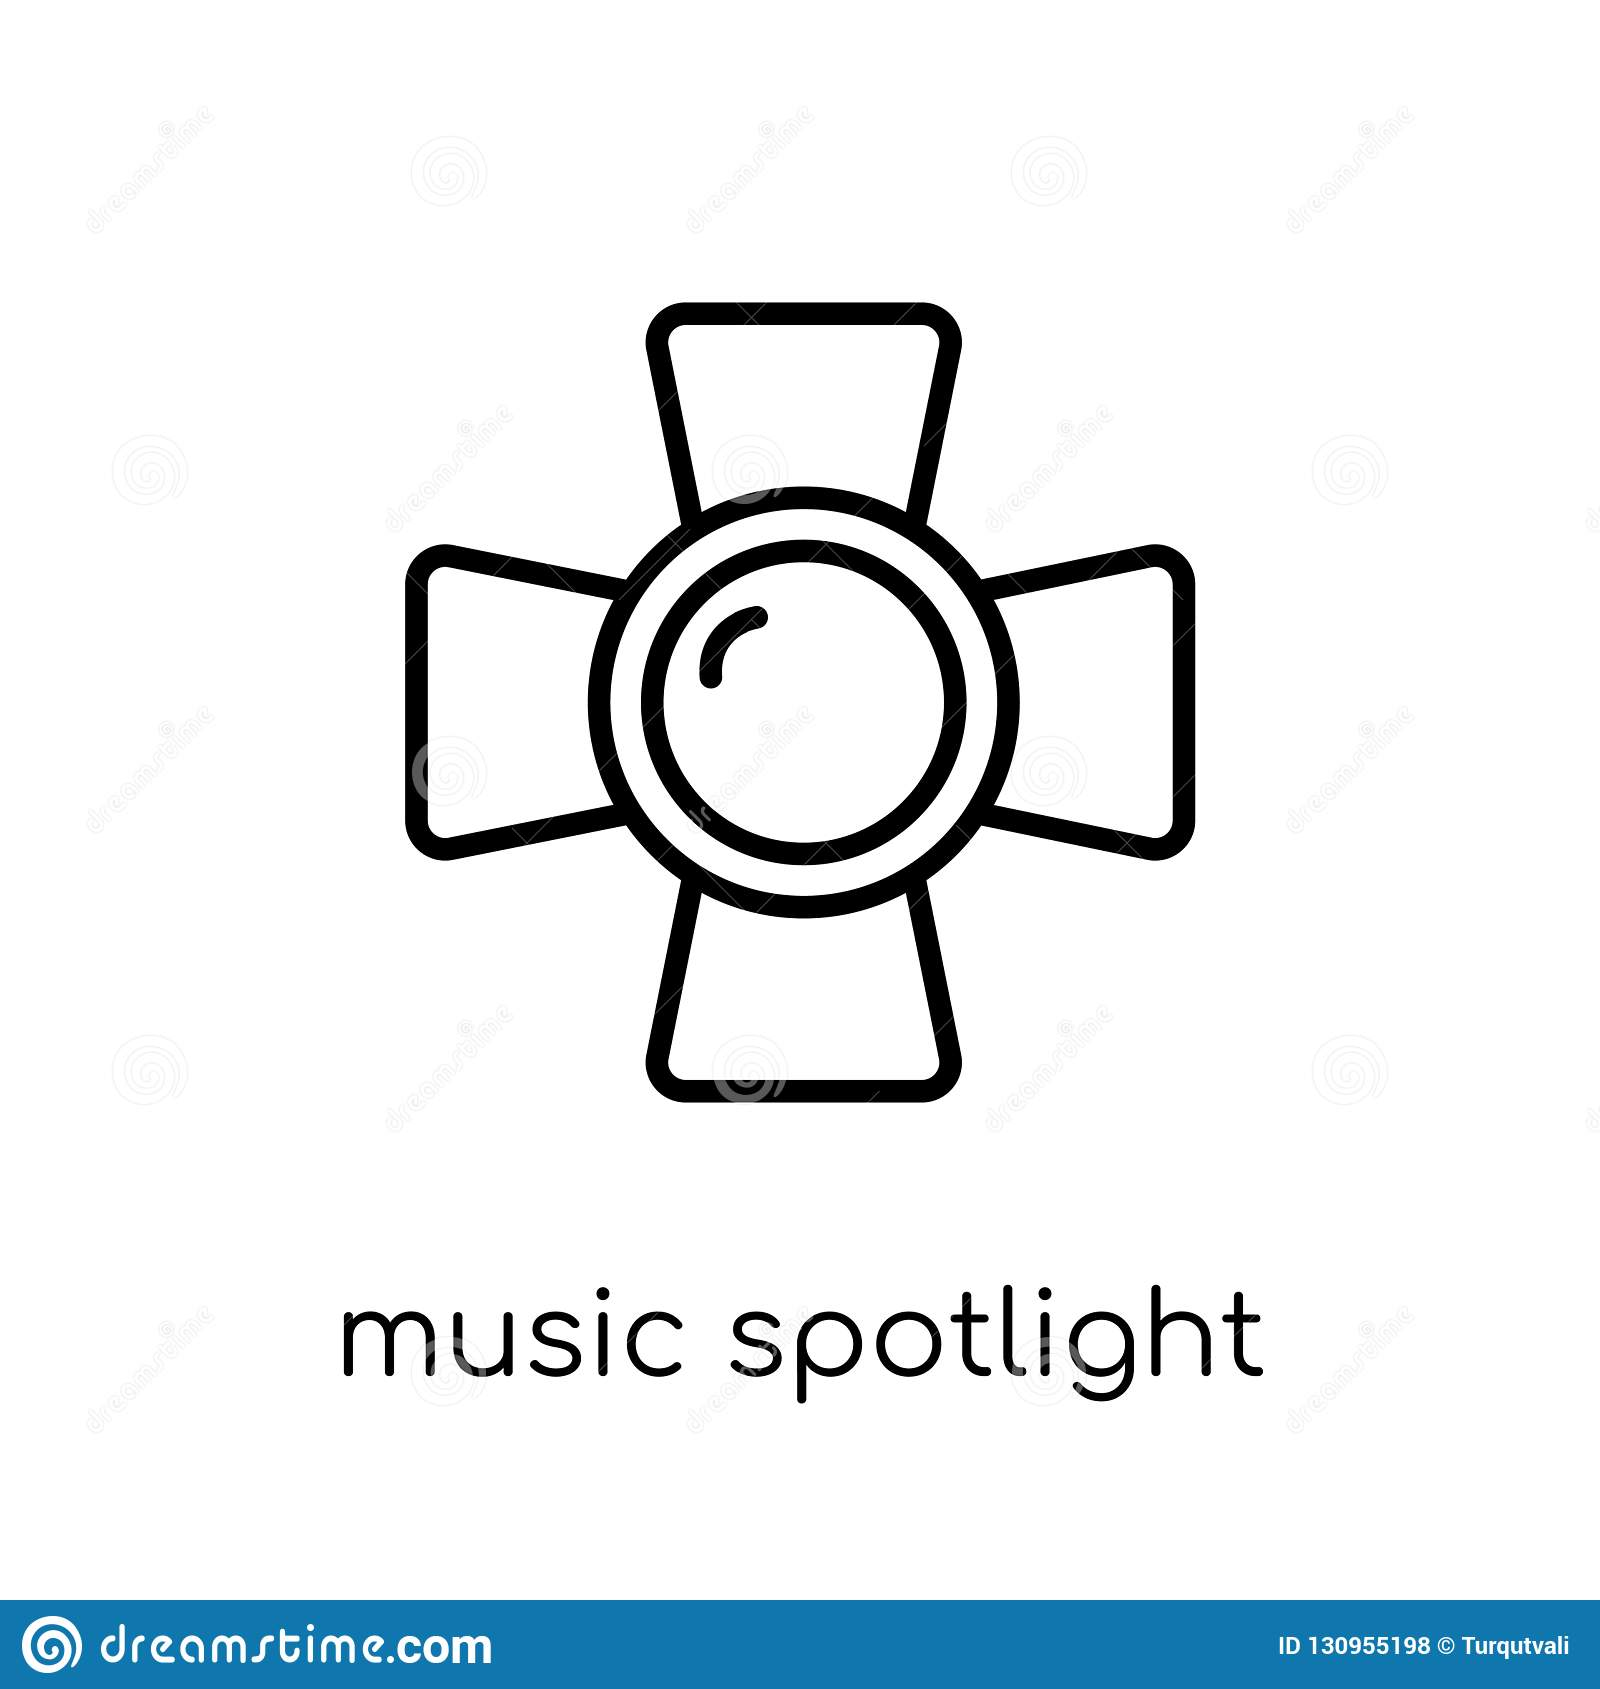 music Spotlight icon from Music collection.